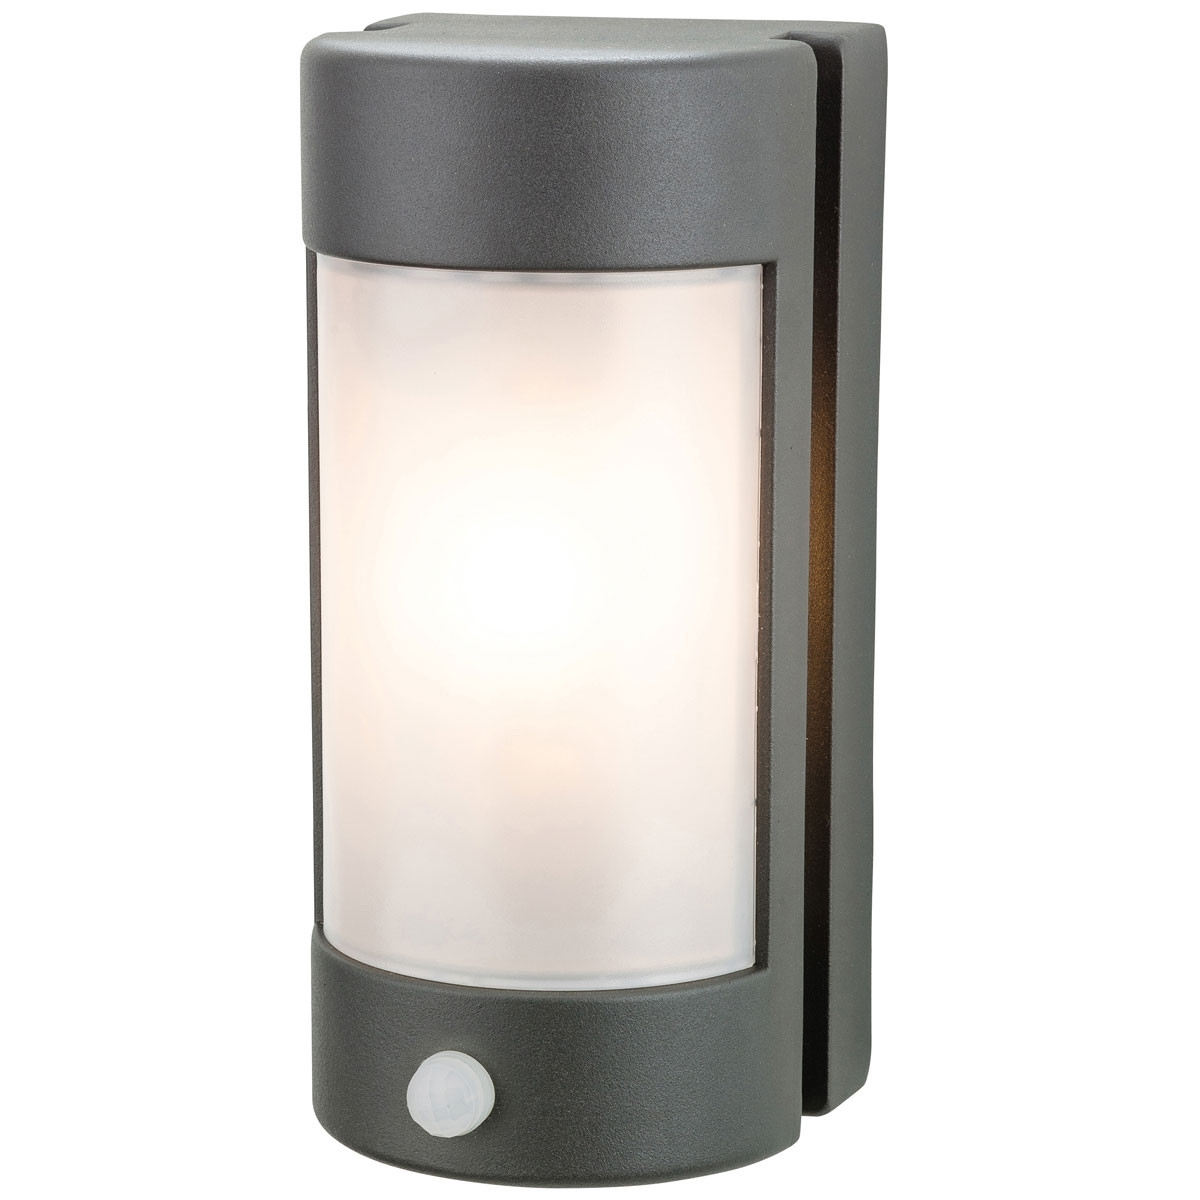 Outdoor Wall Lights With Pir With Newest Diecast Aluminium Graphite Outdoor Wall Light With Pir (View 15 of 20)